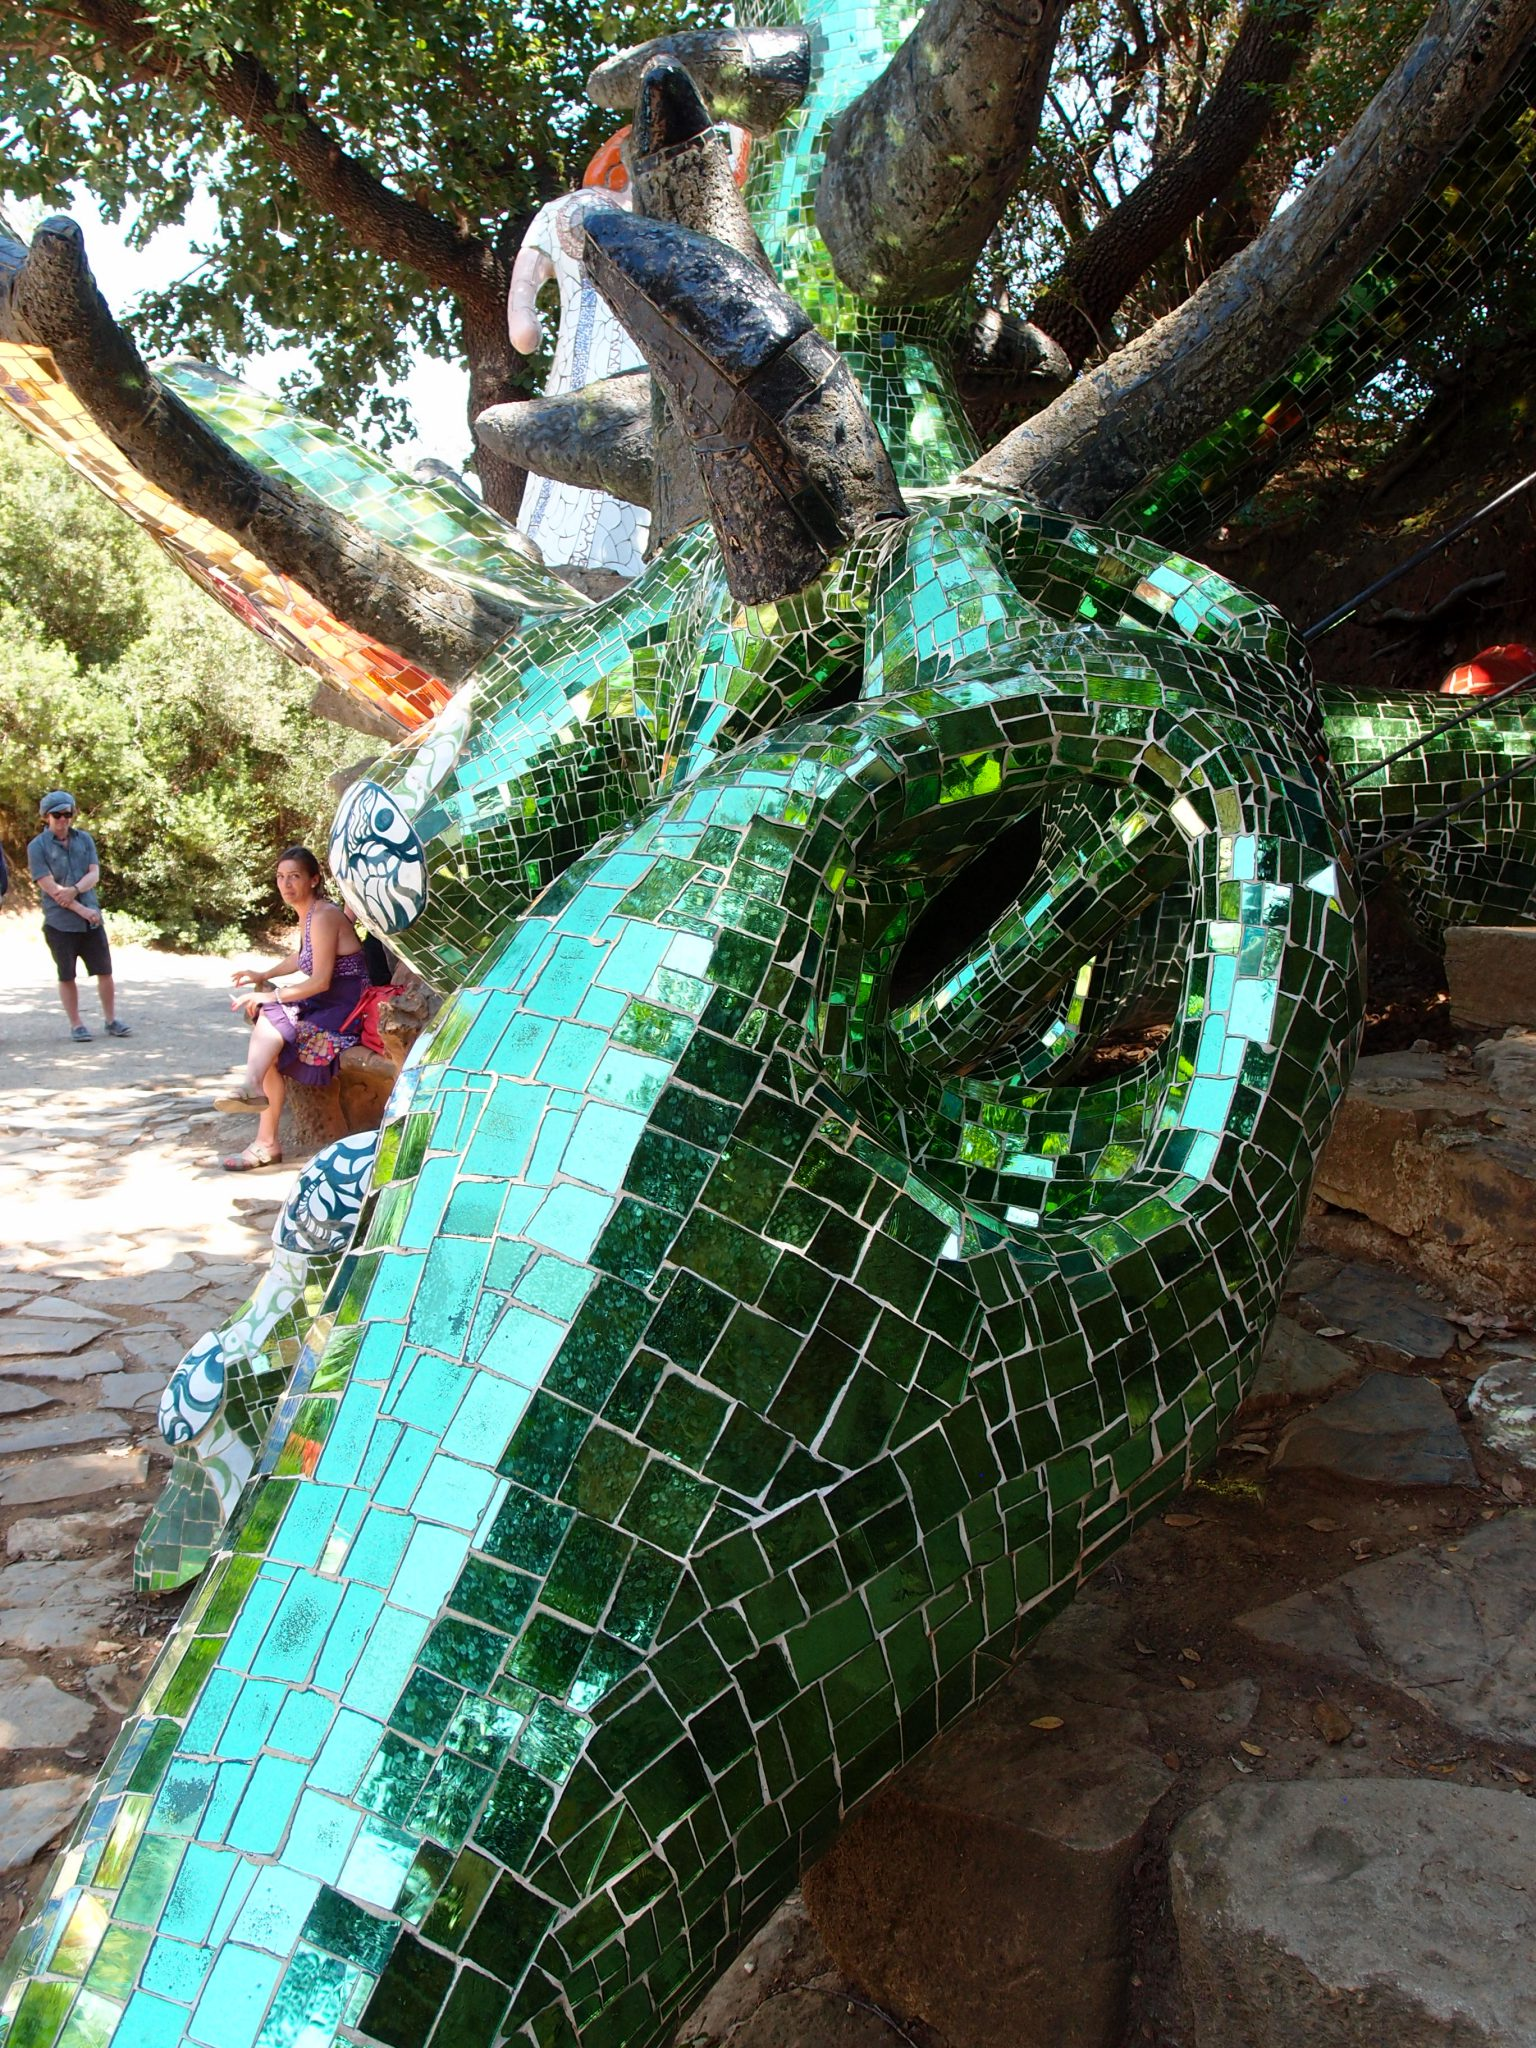 Strength -- detail of Dragon's Tail. See how perfectly the sculpture rests upon the natural rock of the site.